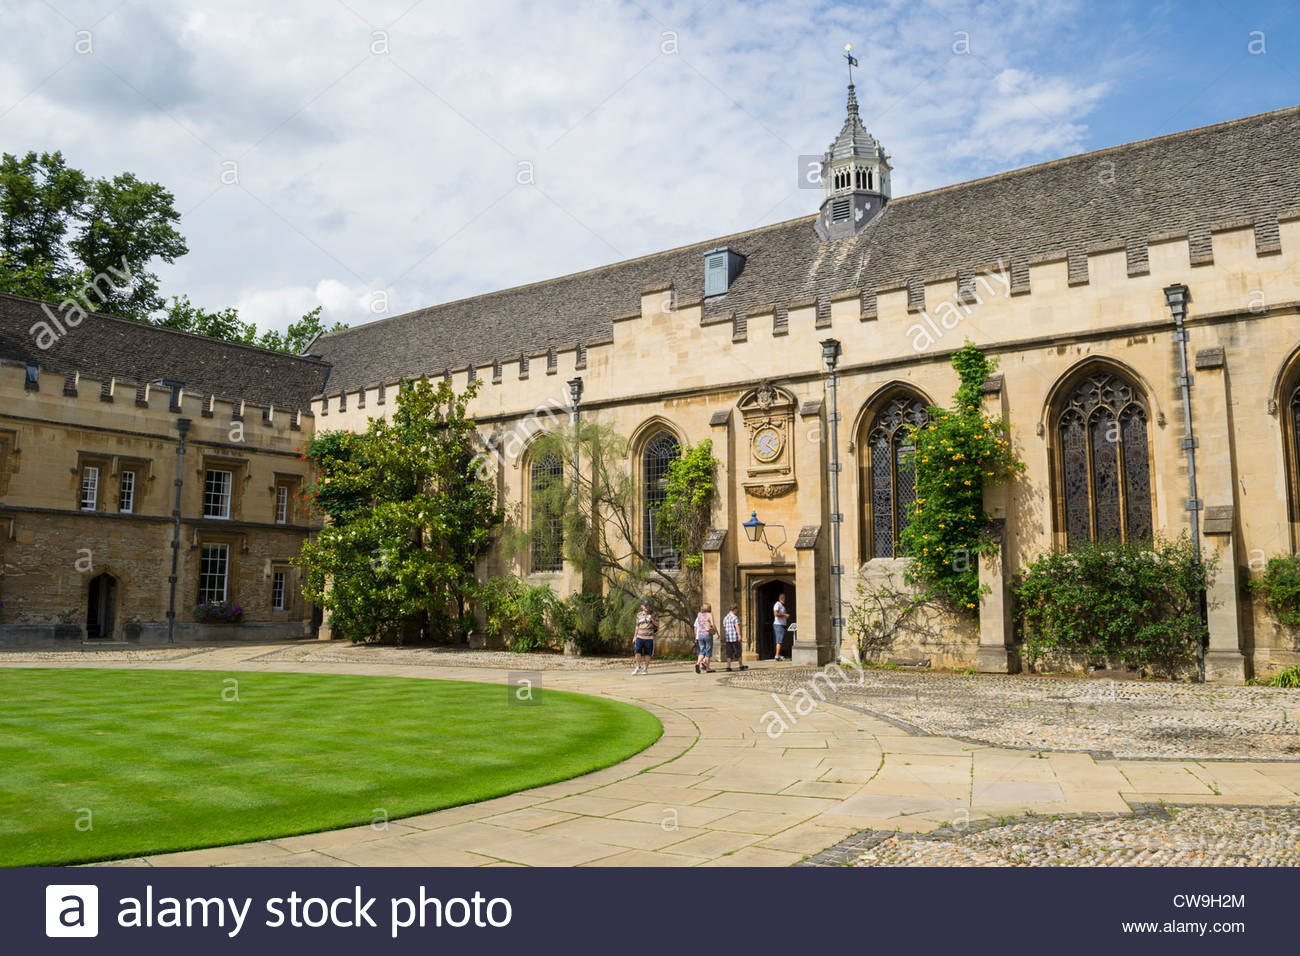 Front Quad, St. Johns College, Oxford - Stock Image